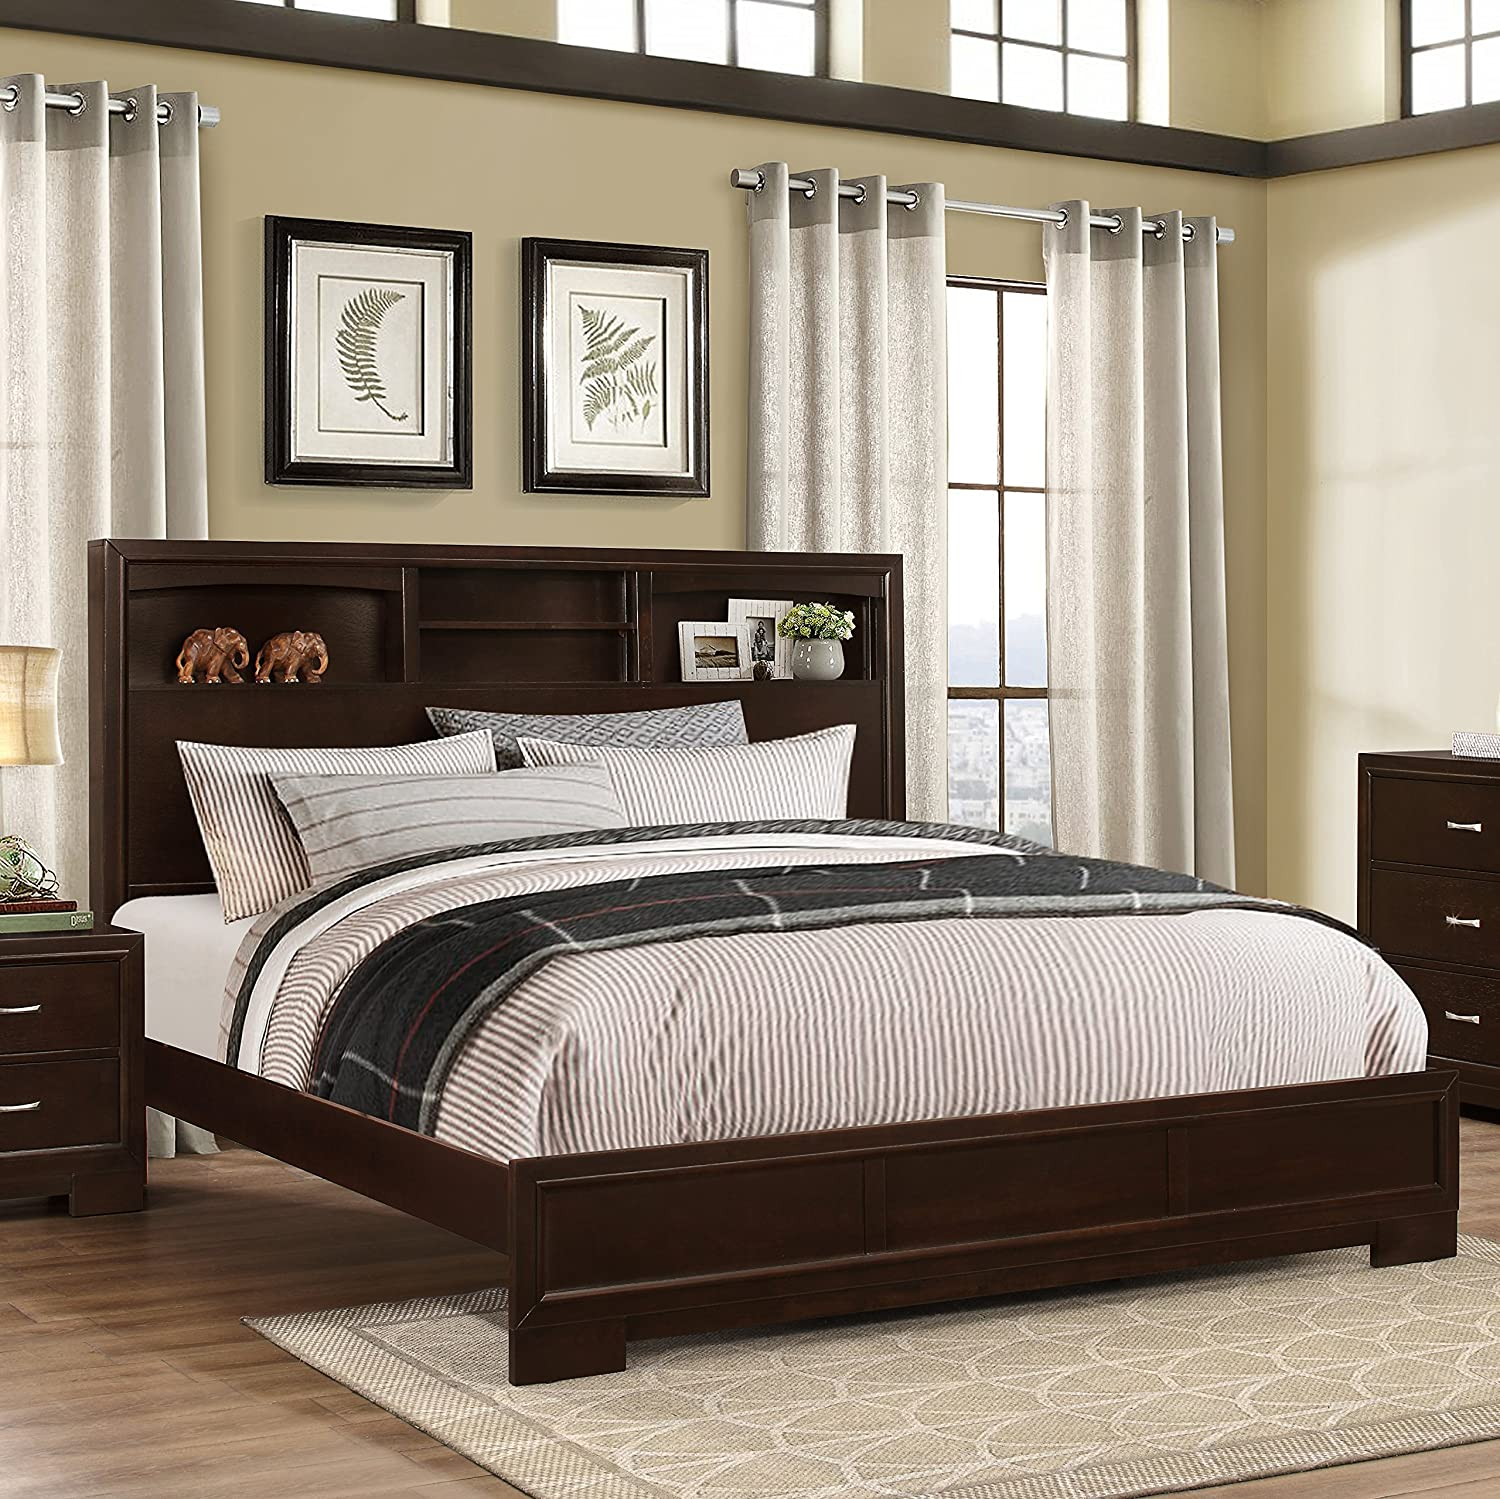 queen furniture size home d new bedroom cor bed brssett room piece set solaris